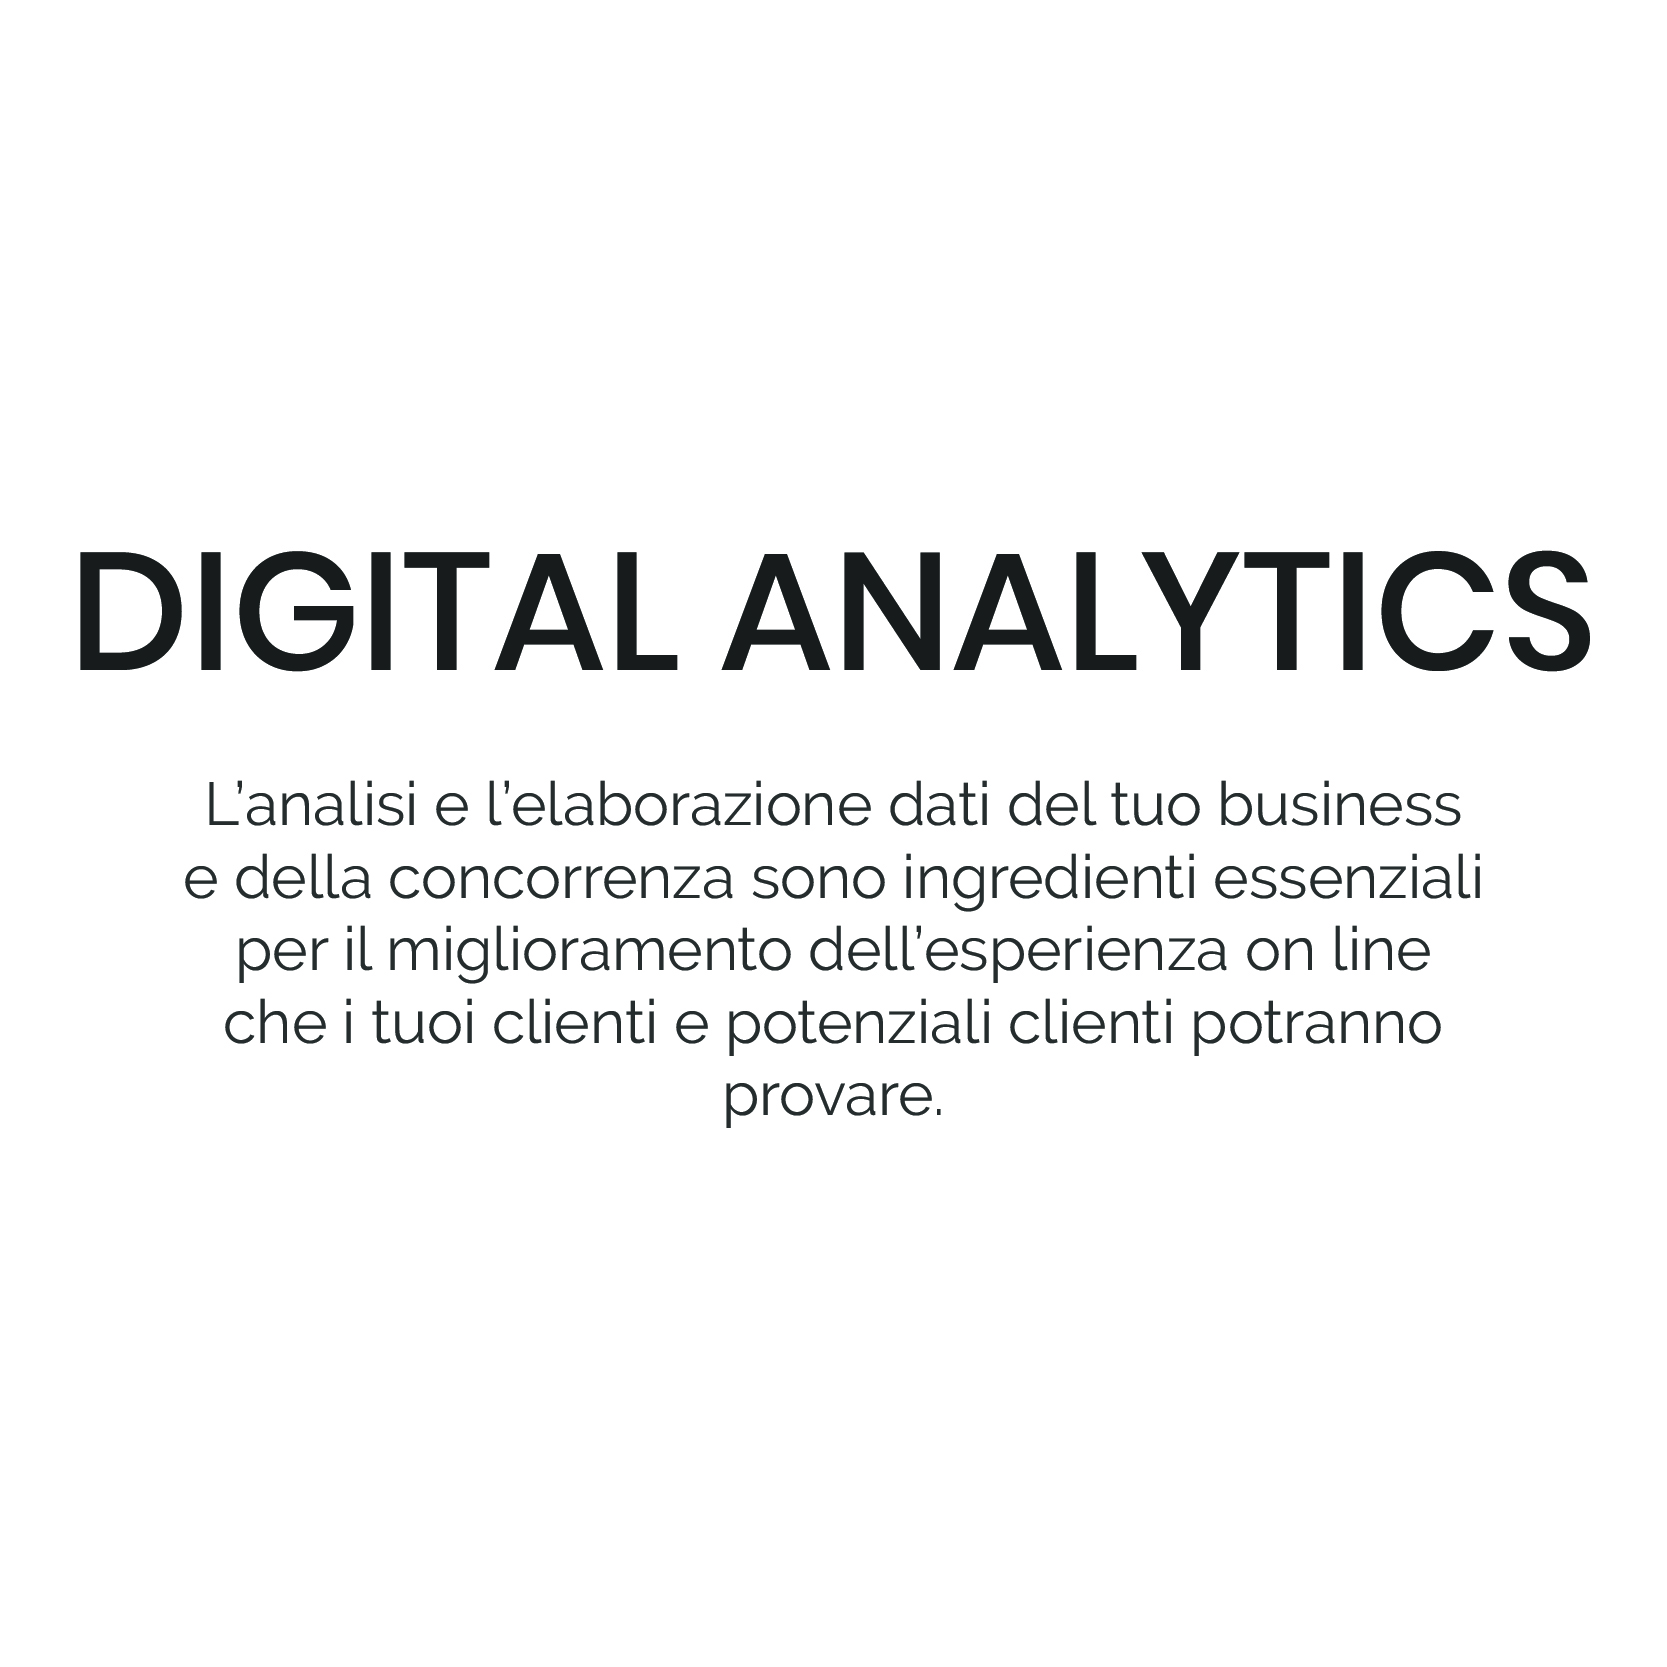 digital_analytics